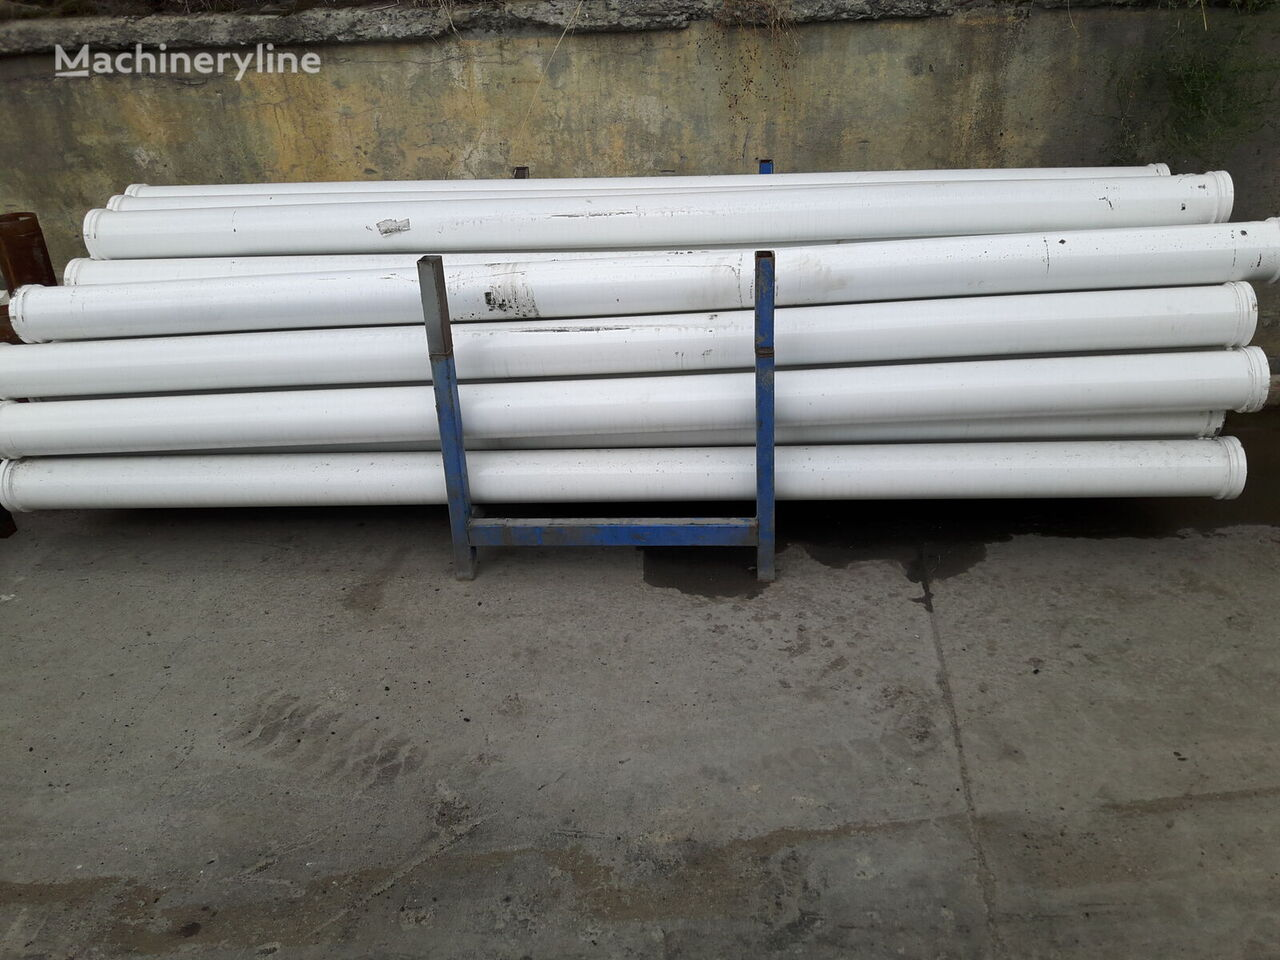 ST52 SERMAC SPARE PARTS other industrial equipment